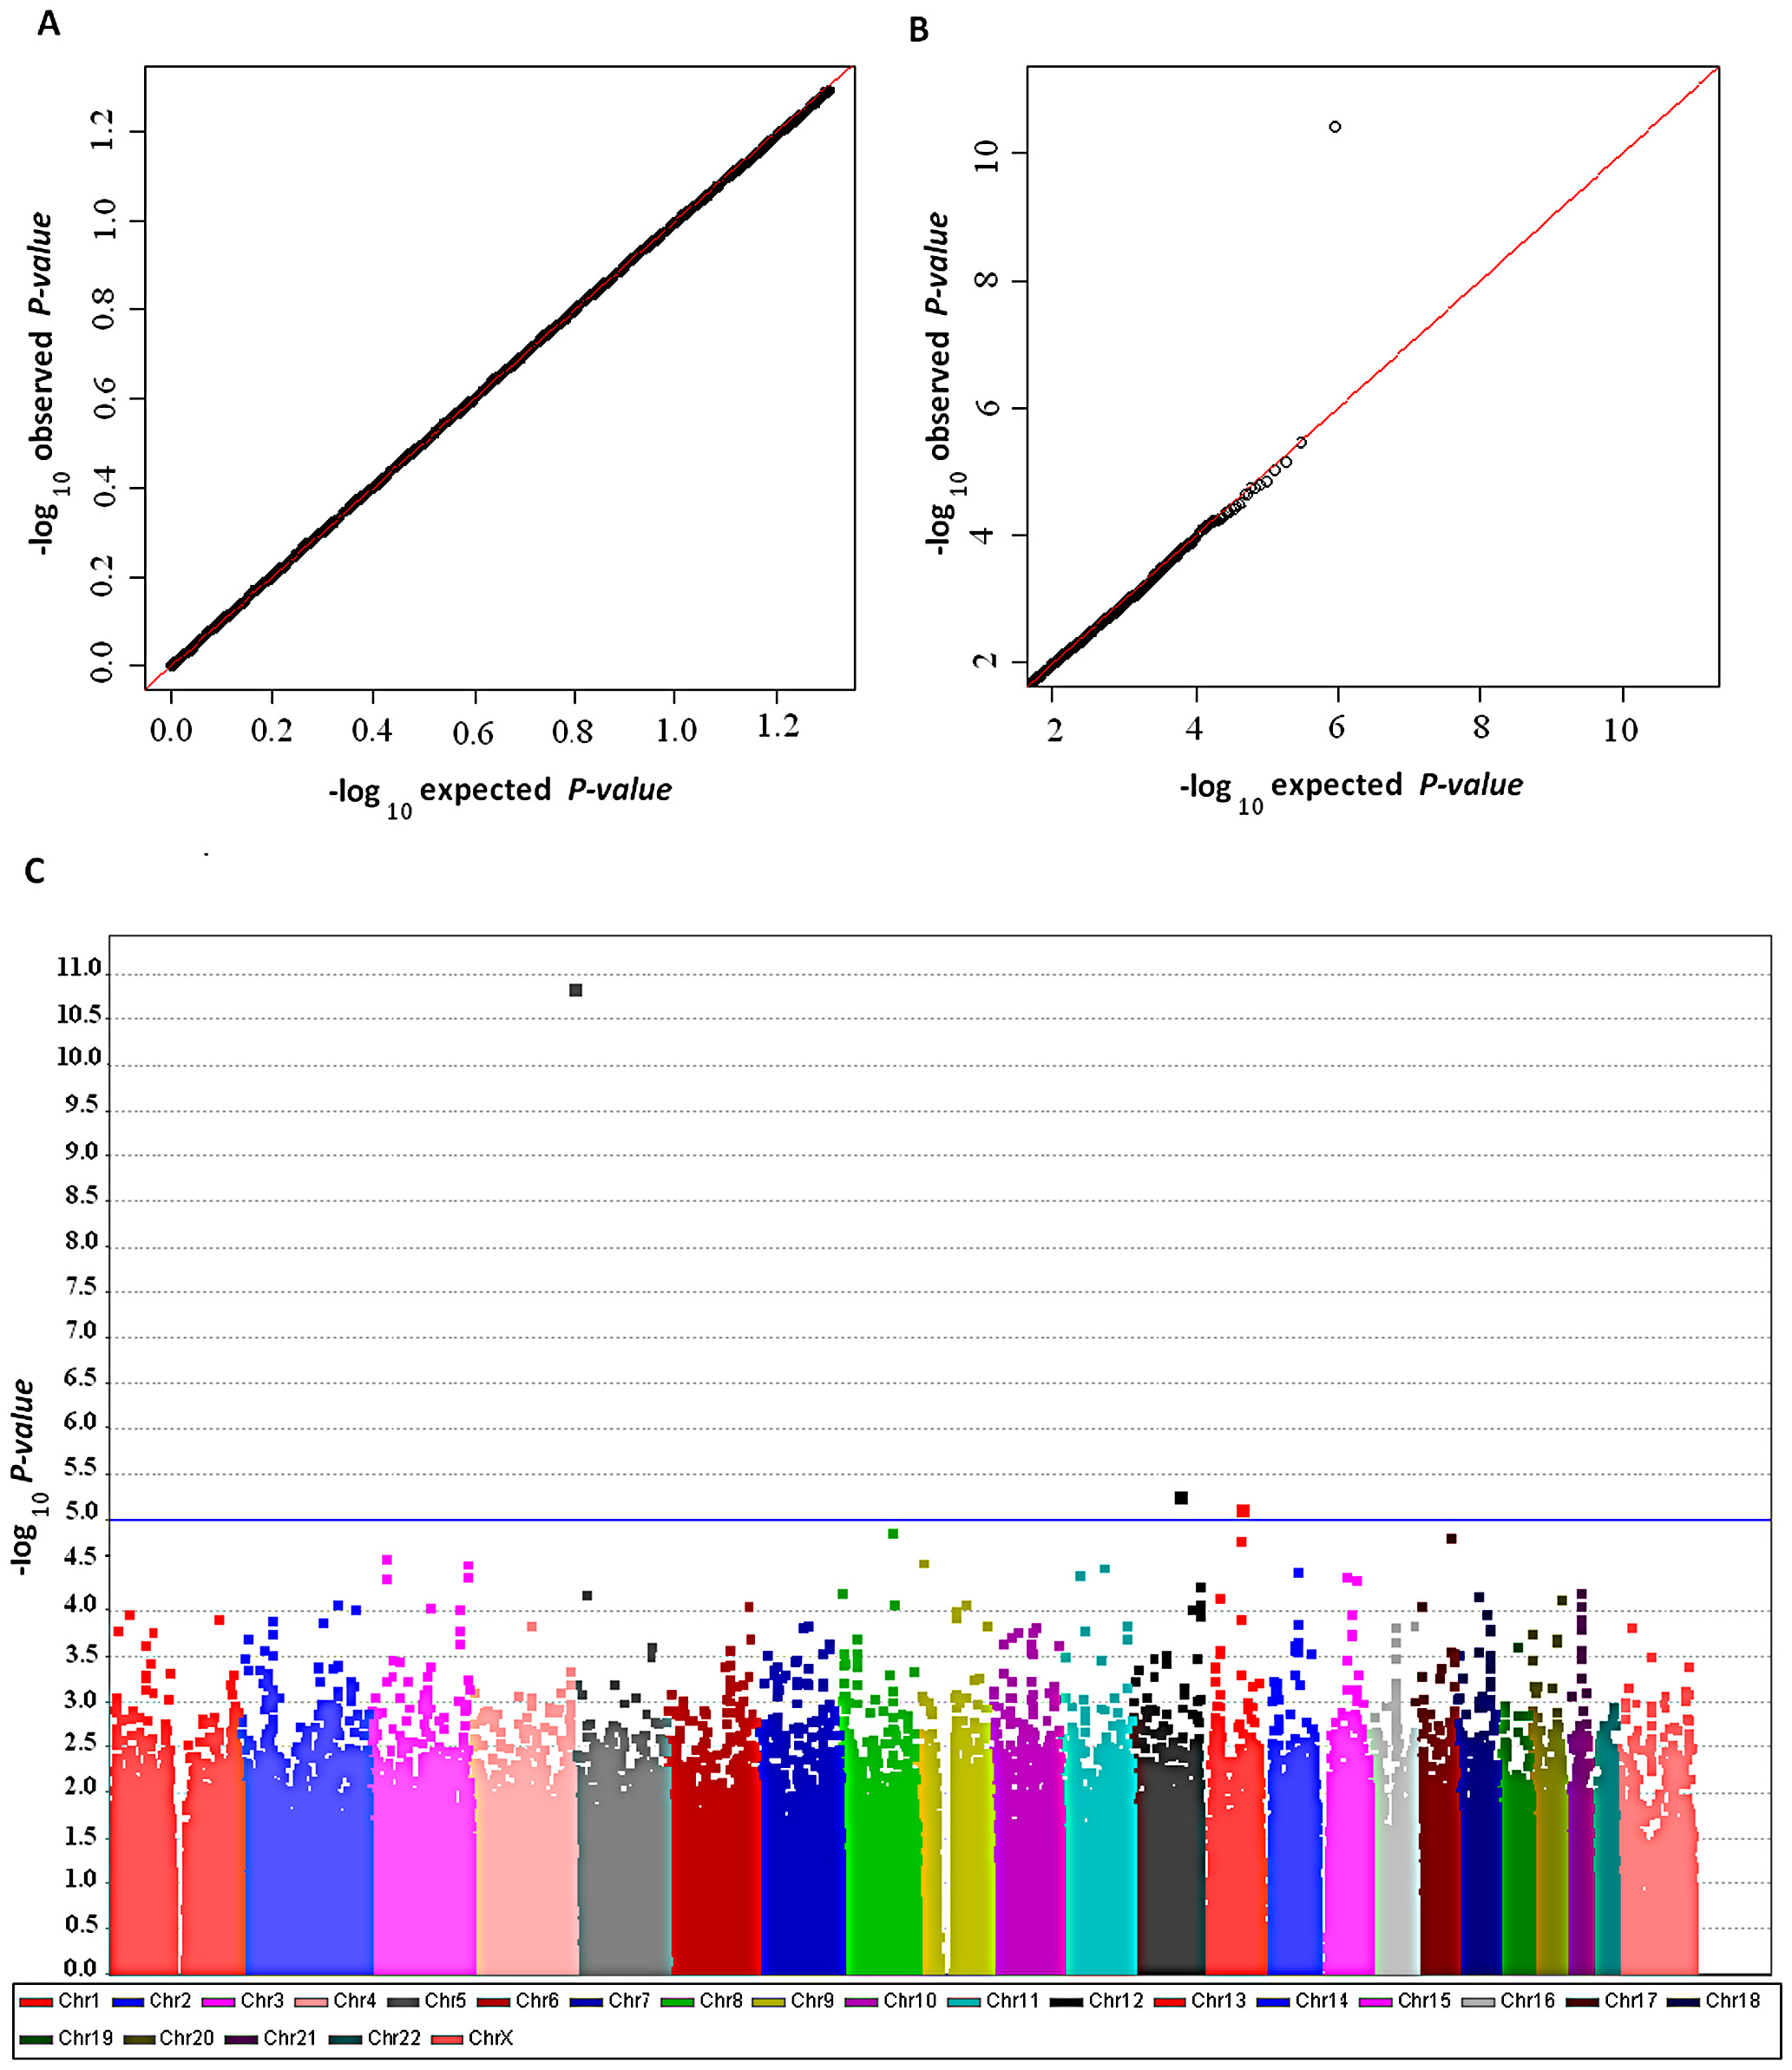 Genome-wide association results in the GELAC study.